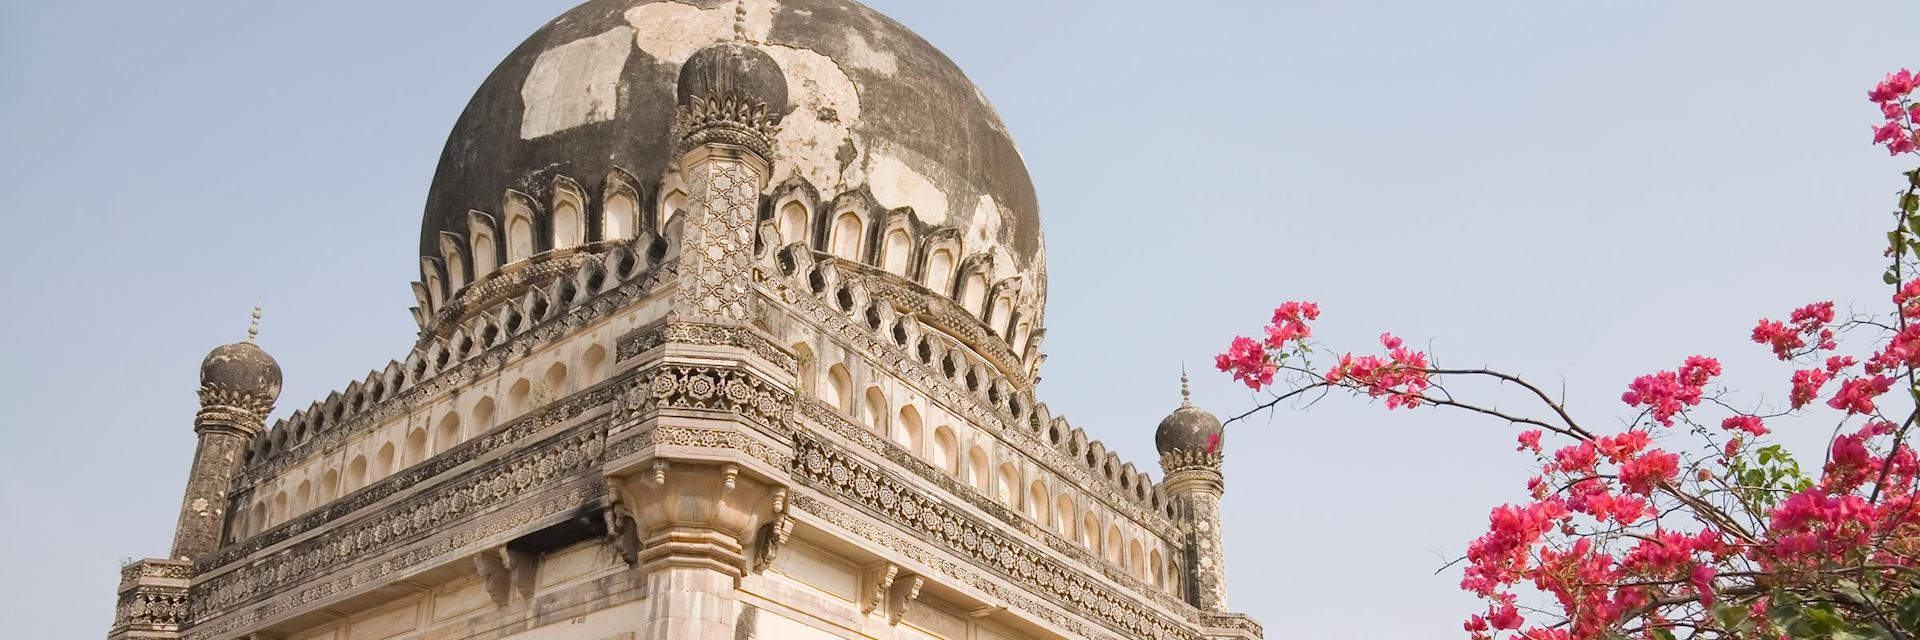 Old Tomb in Hyderabad